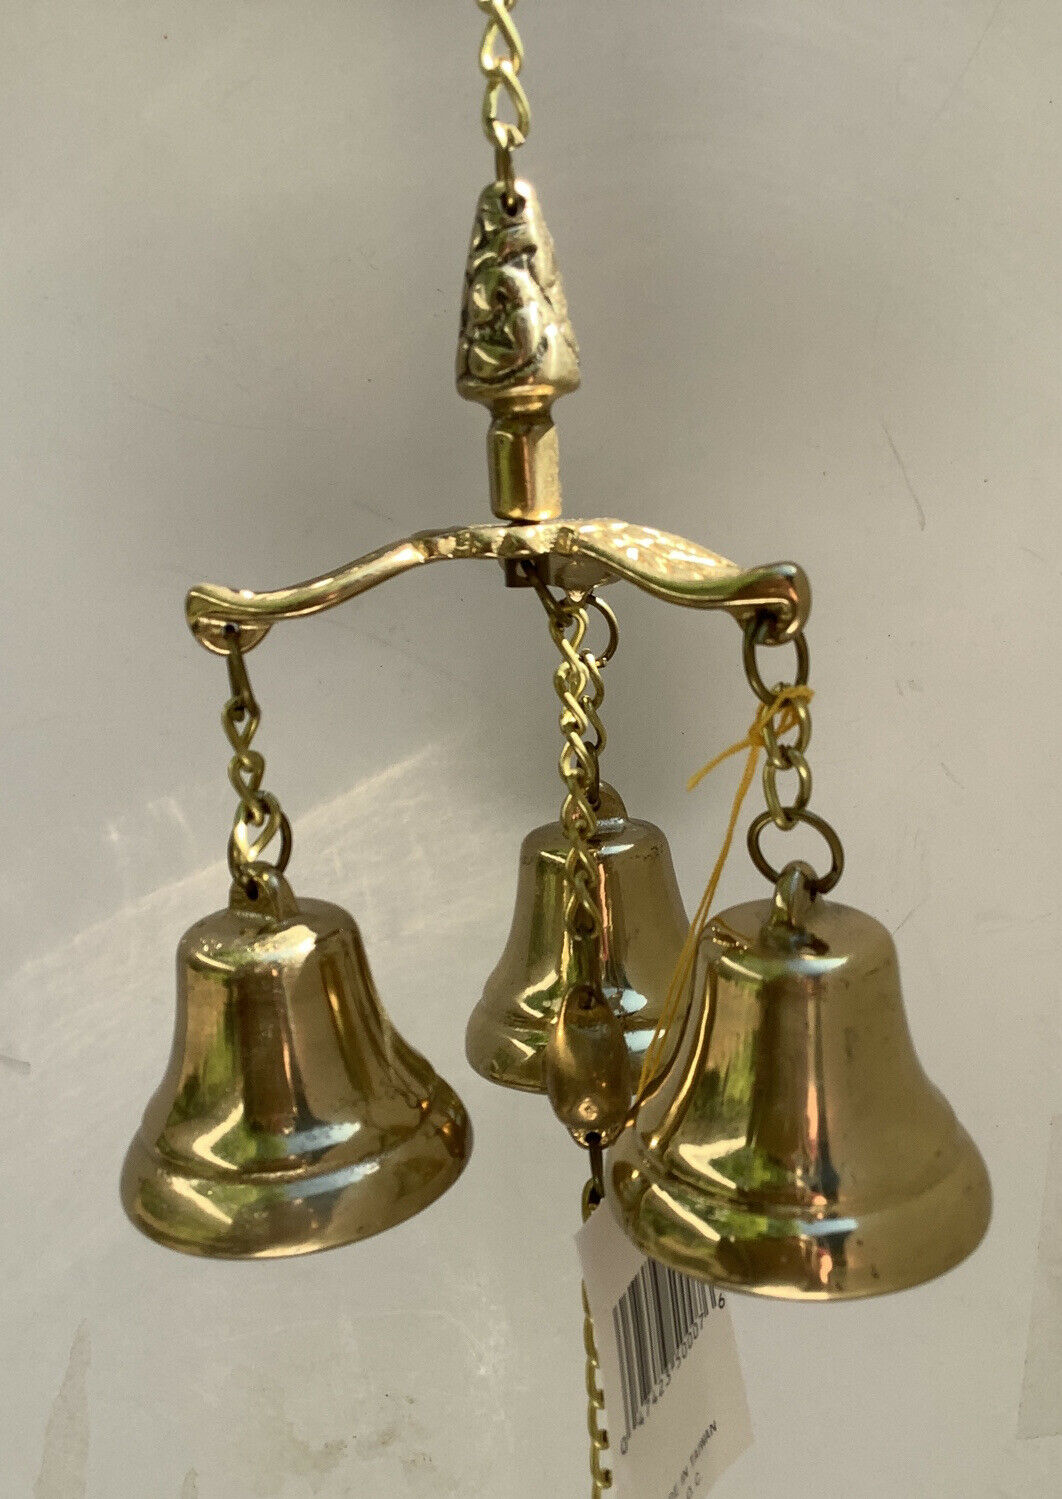 Vintage Solid Brass Wind Chime 3 Bells New Old Stock From K-Mart Made In Taiwan